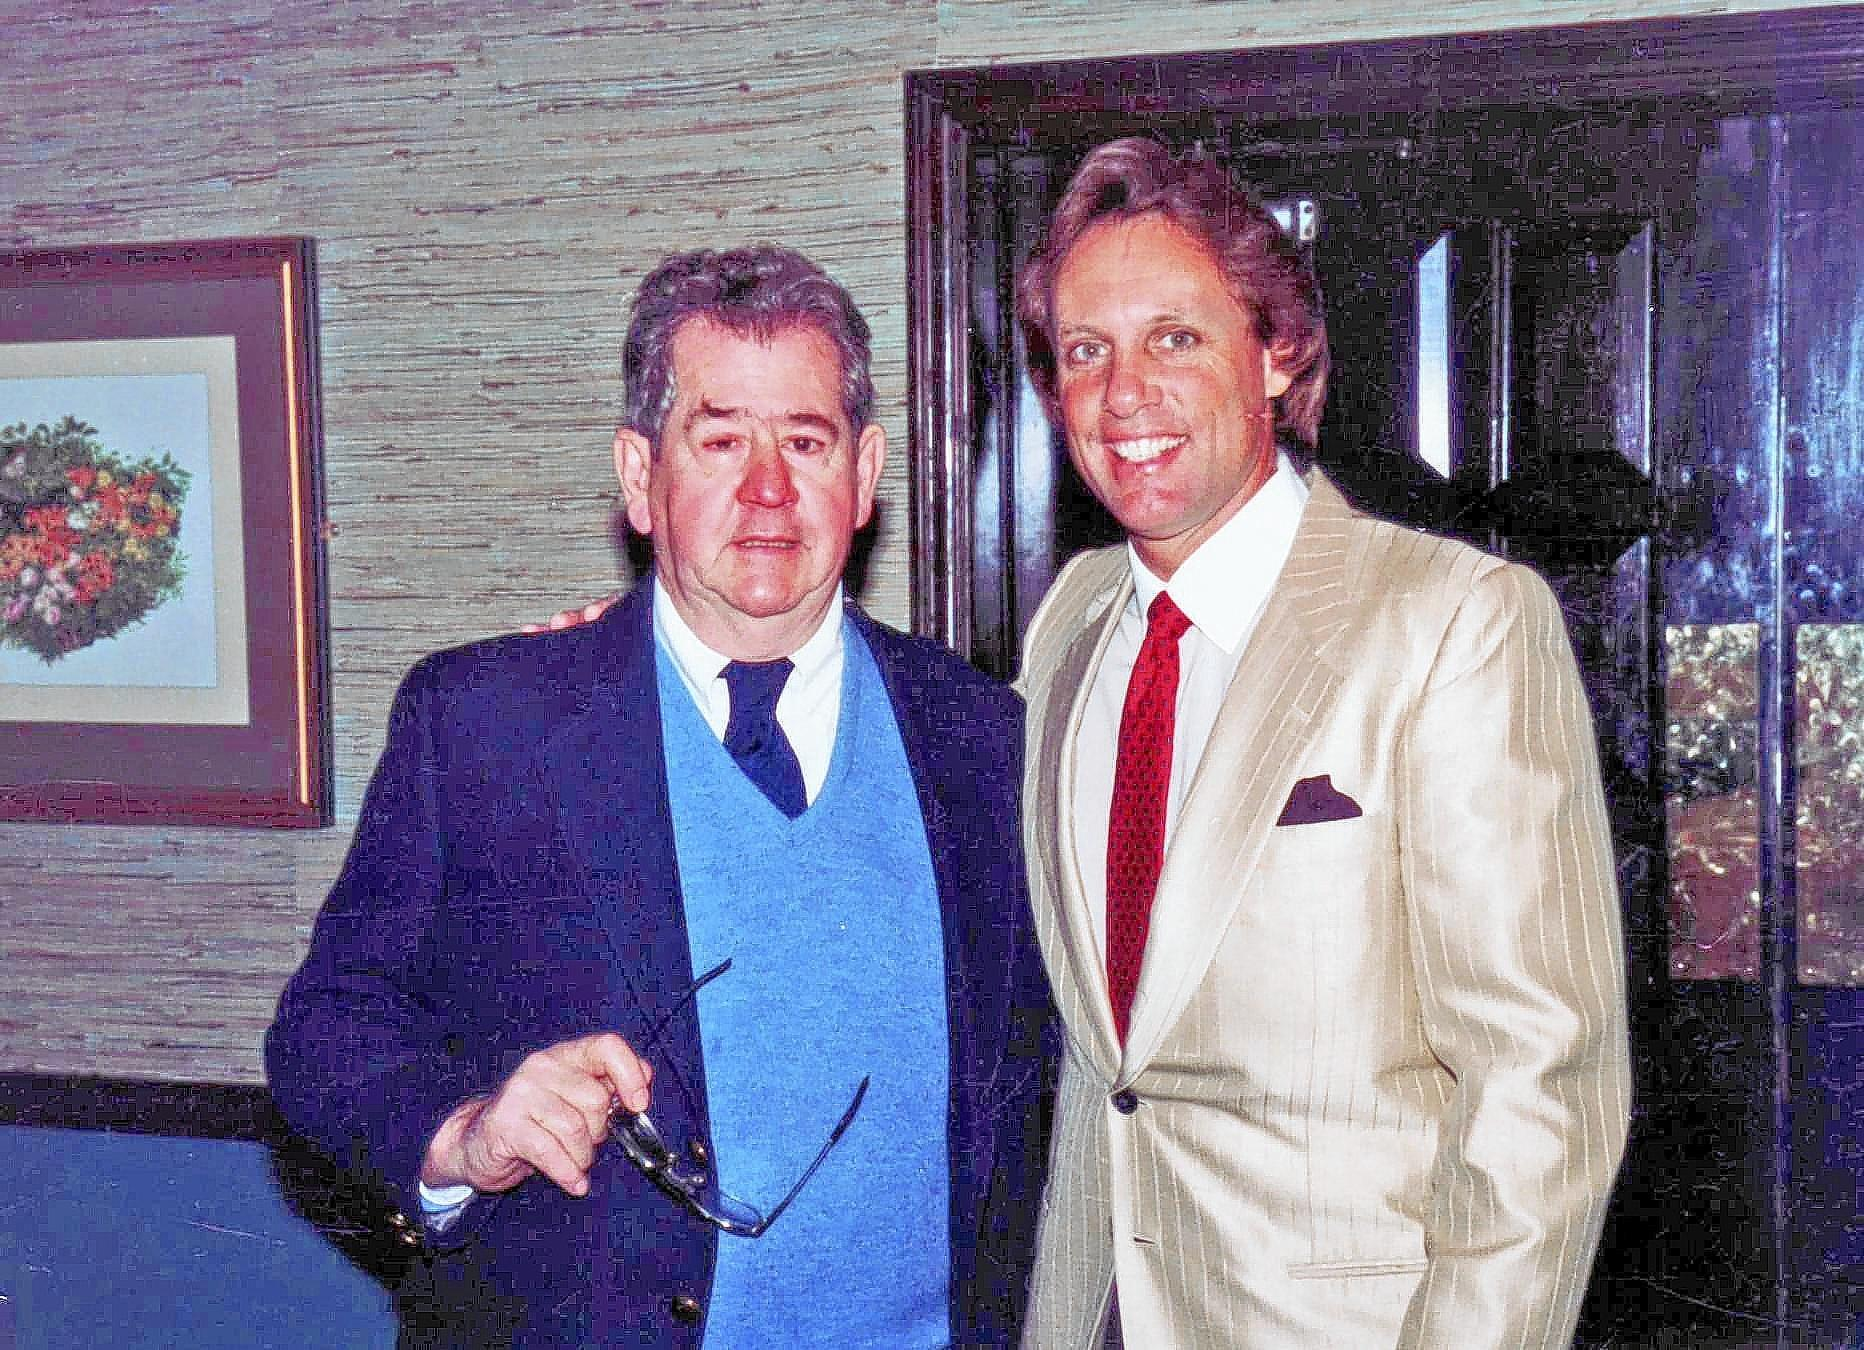 George Frost, left, with his godson Jay Johnstone, a former Major League Baseball player.